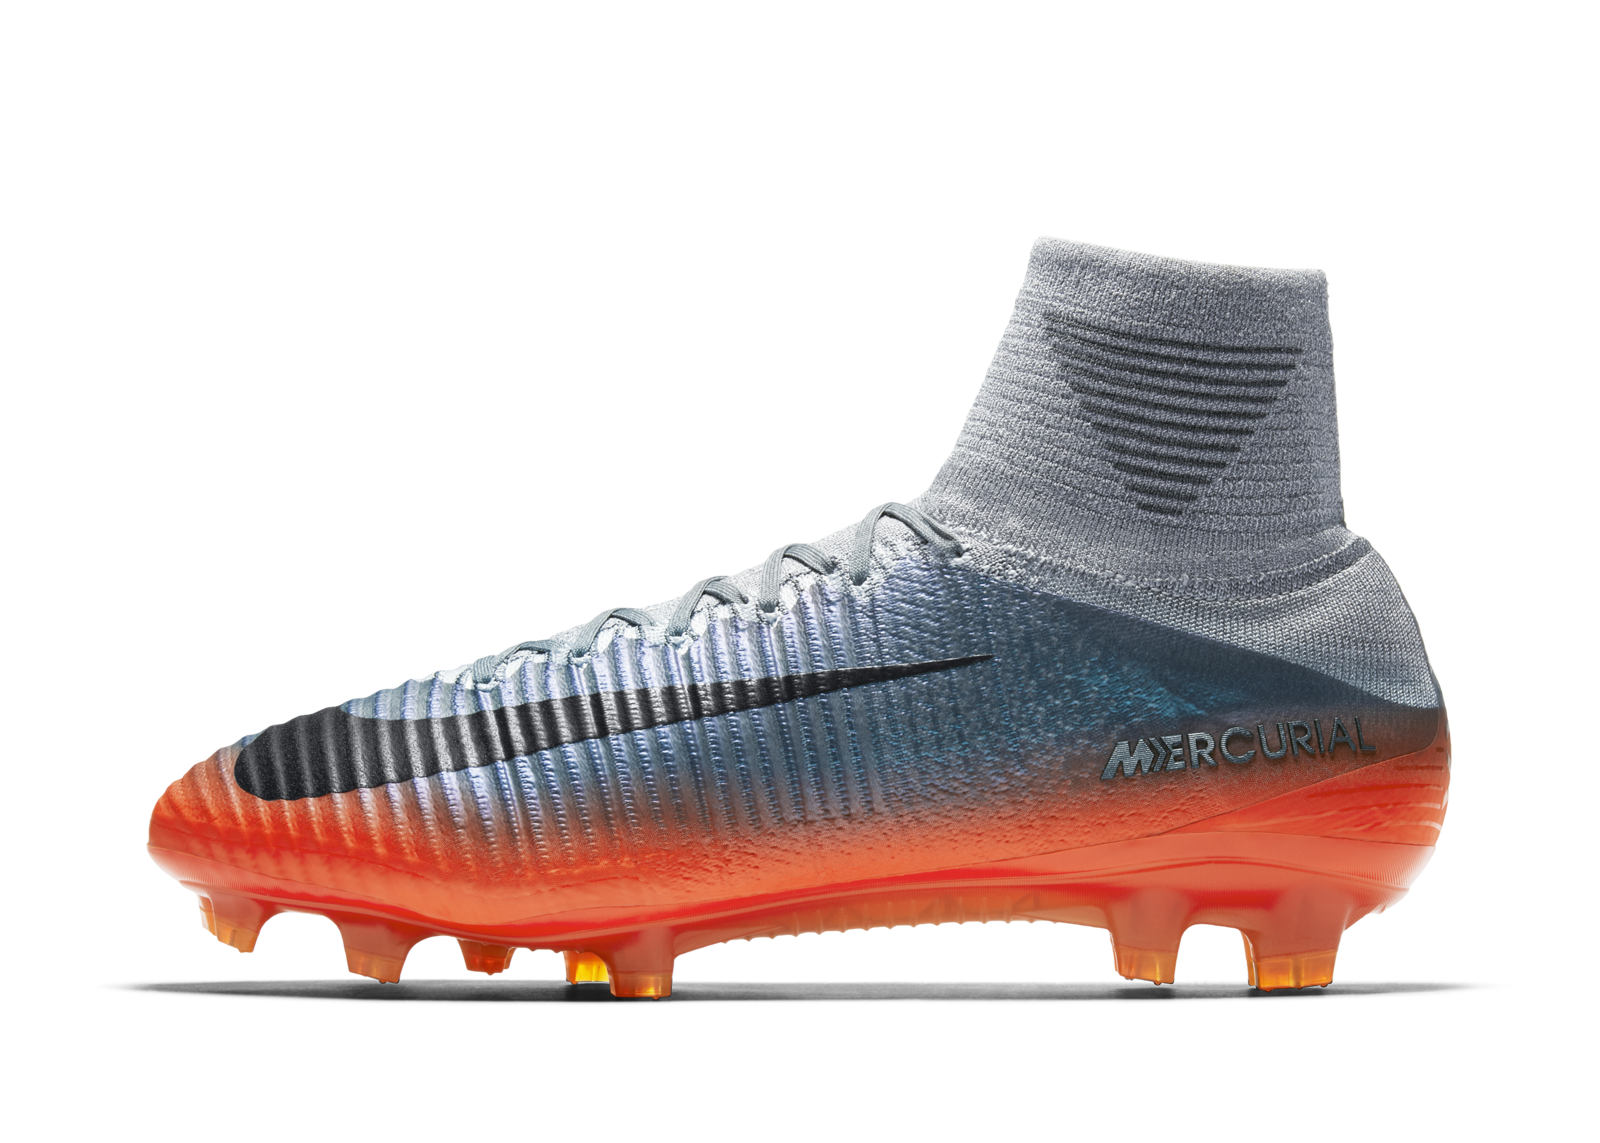 0a82d4b2ef9 Nike News - Cristiano Ronaldo s New Boots Recall His Shift to Number 7